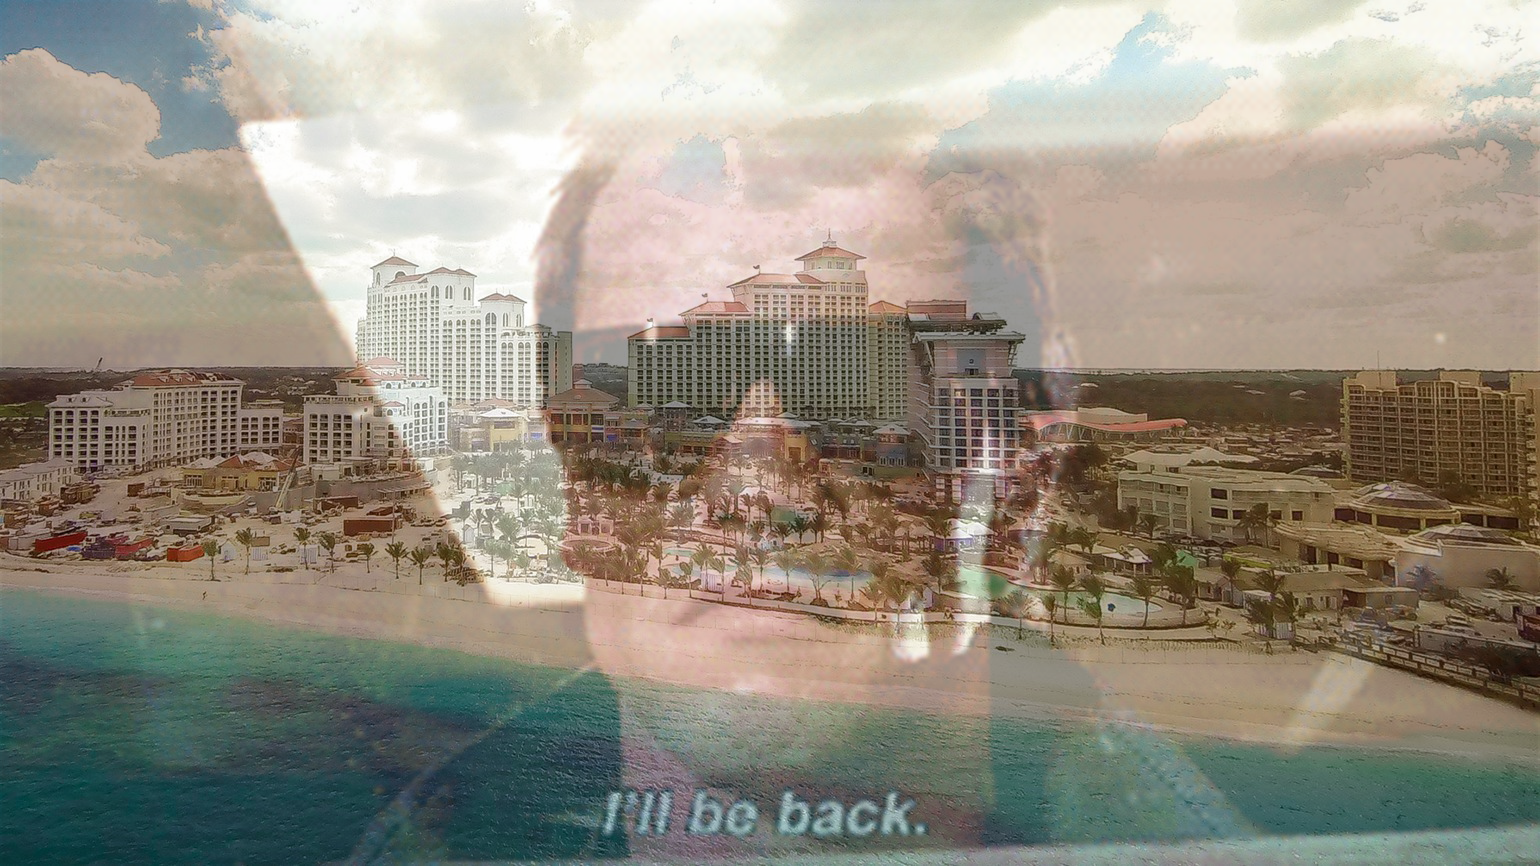 baha mar will be Back